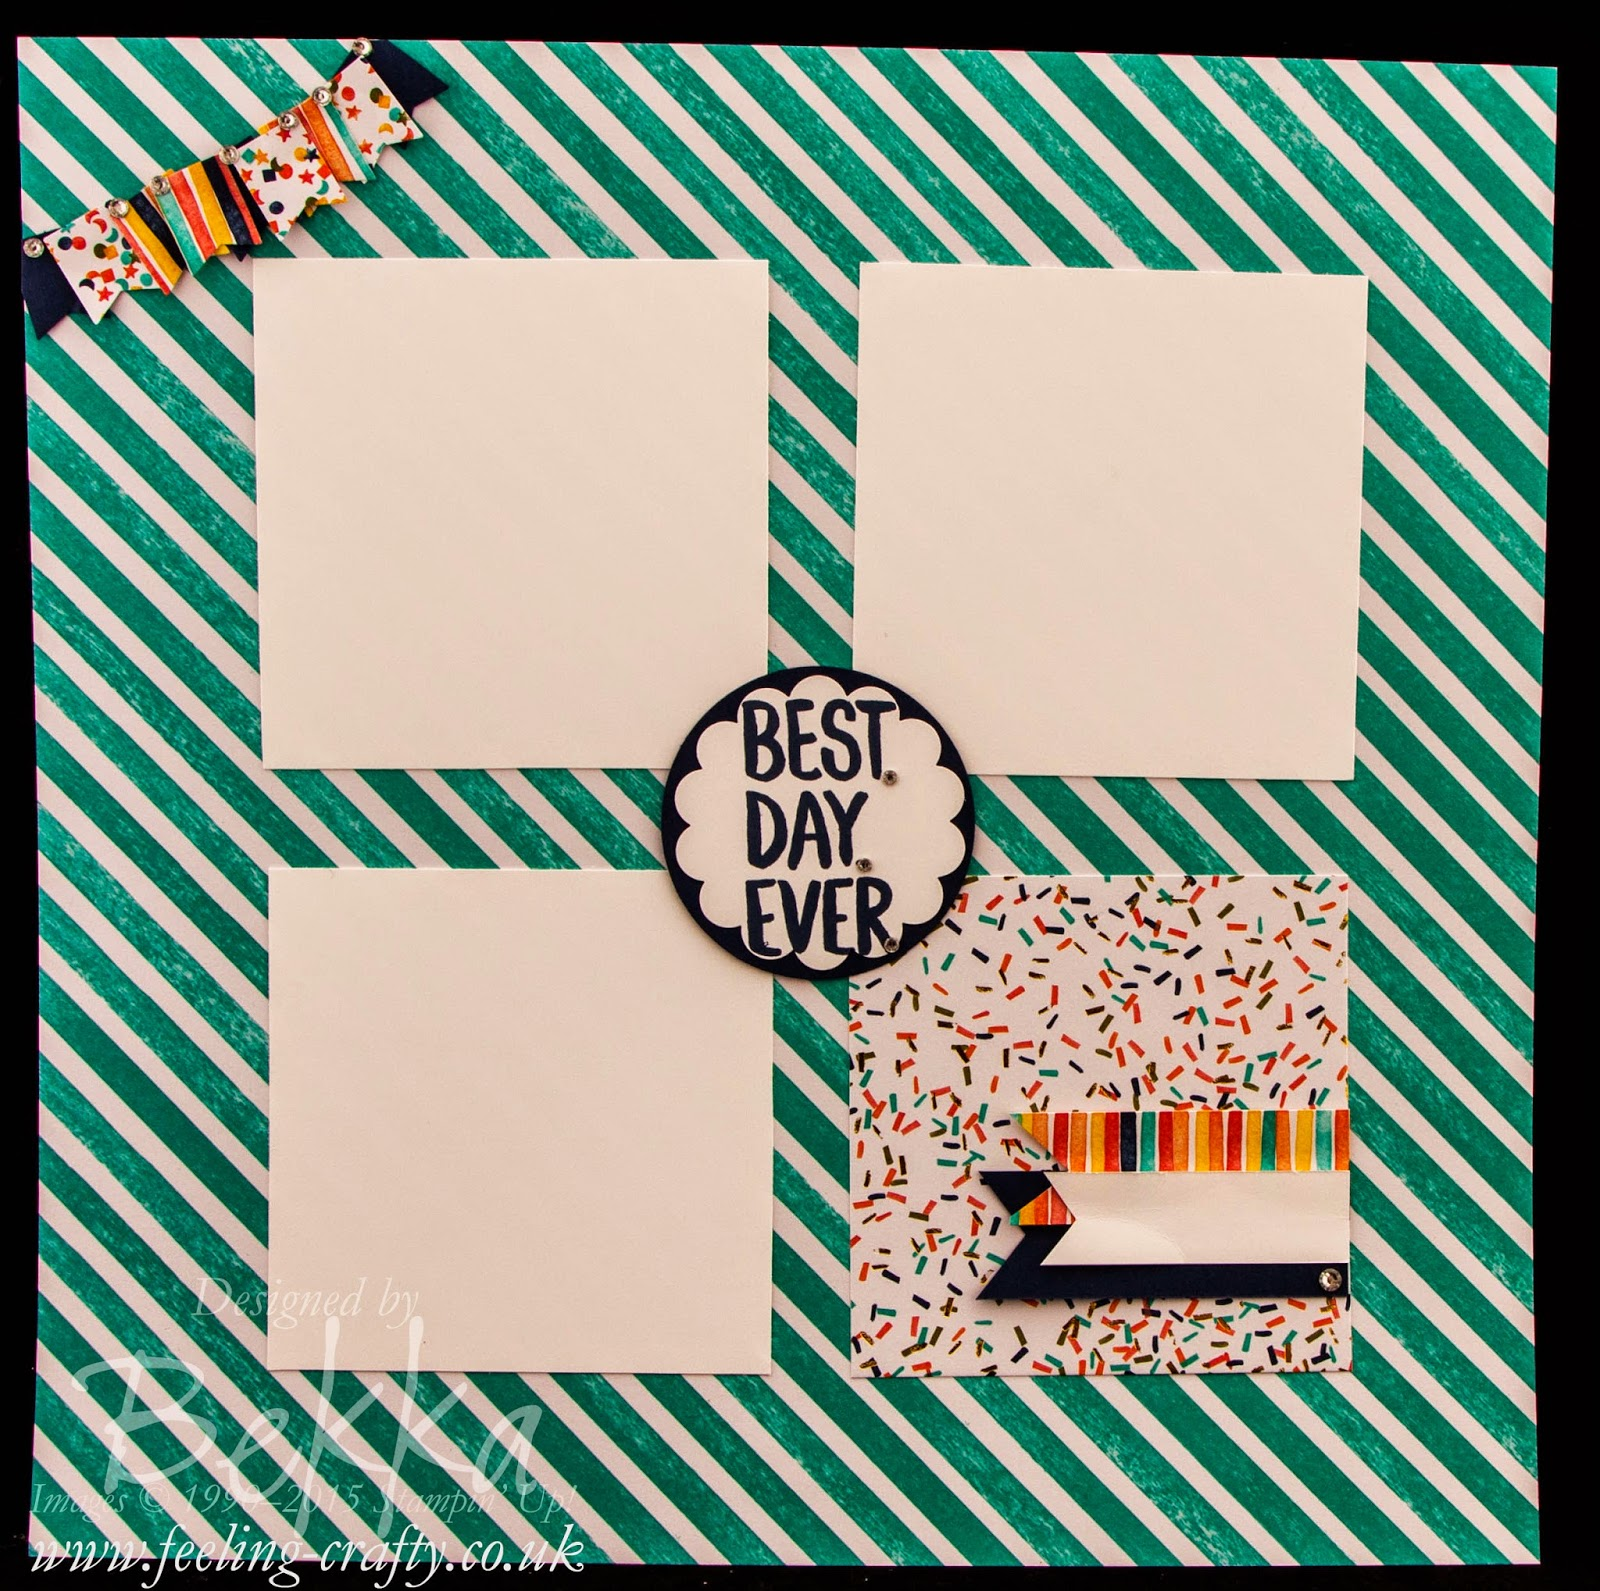 Best Day Ever / Birthday Bash Scrapbook Start Point Page - Ideal for Instagram Photos - check it out here